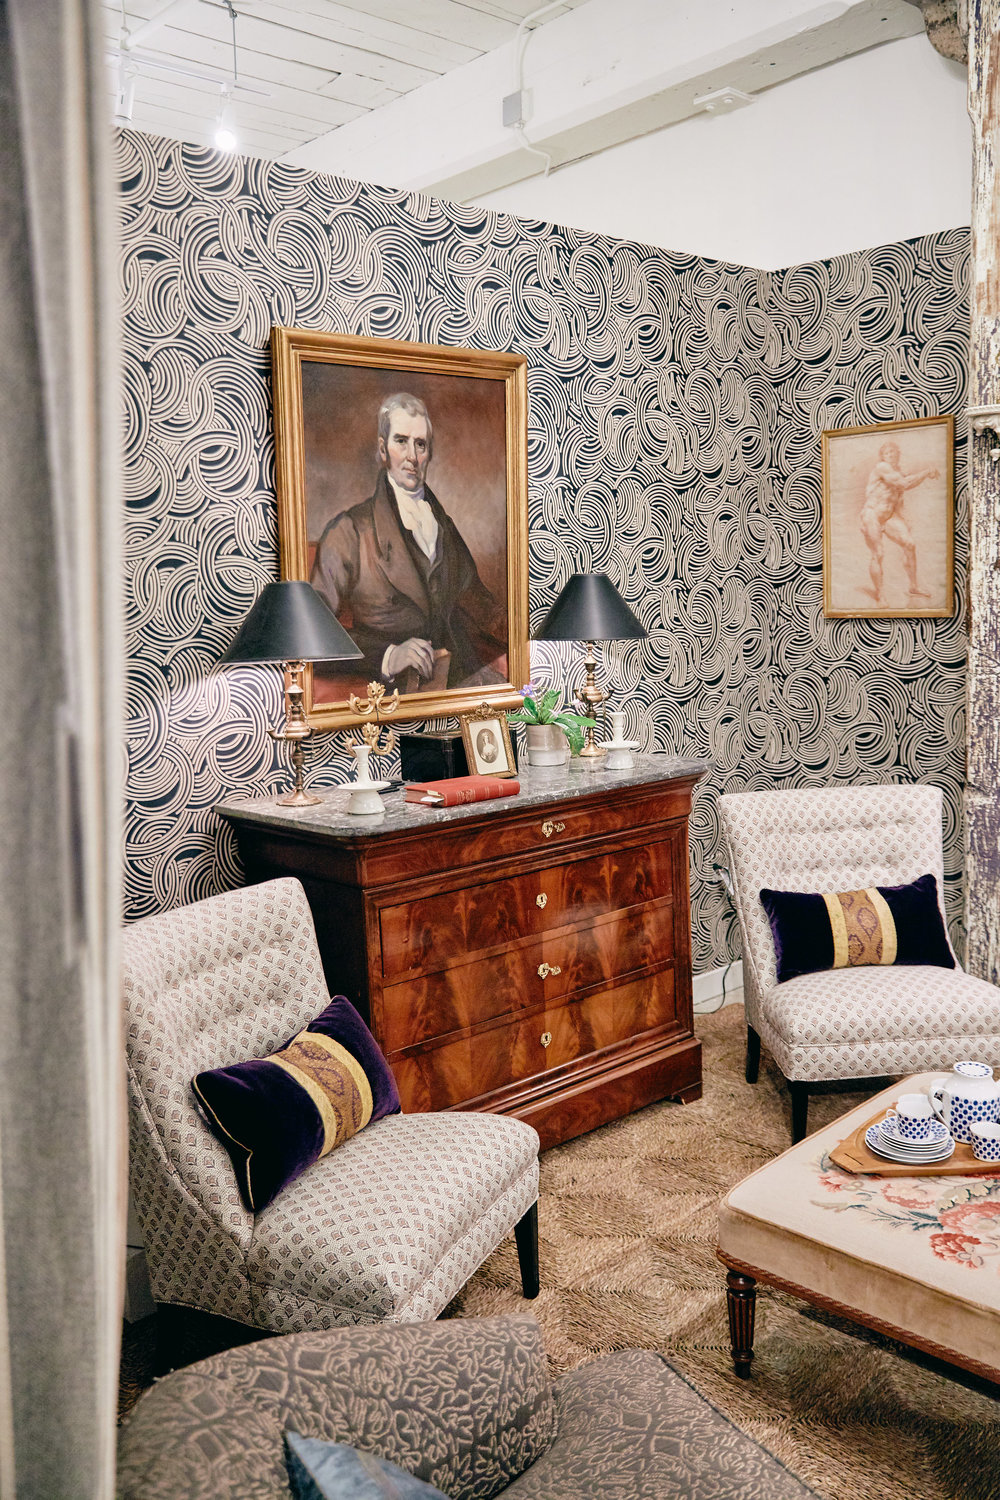 The Tourbillon Wallpaper from Farrow and Ball creates a graphic backdrop for the slipper chairs covered in Lewis and Wood linen.  The 19th century commode is from John Pope Antiques and the portrait is from 17 South Antiques.